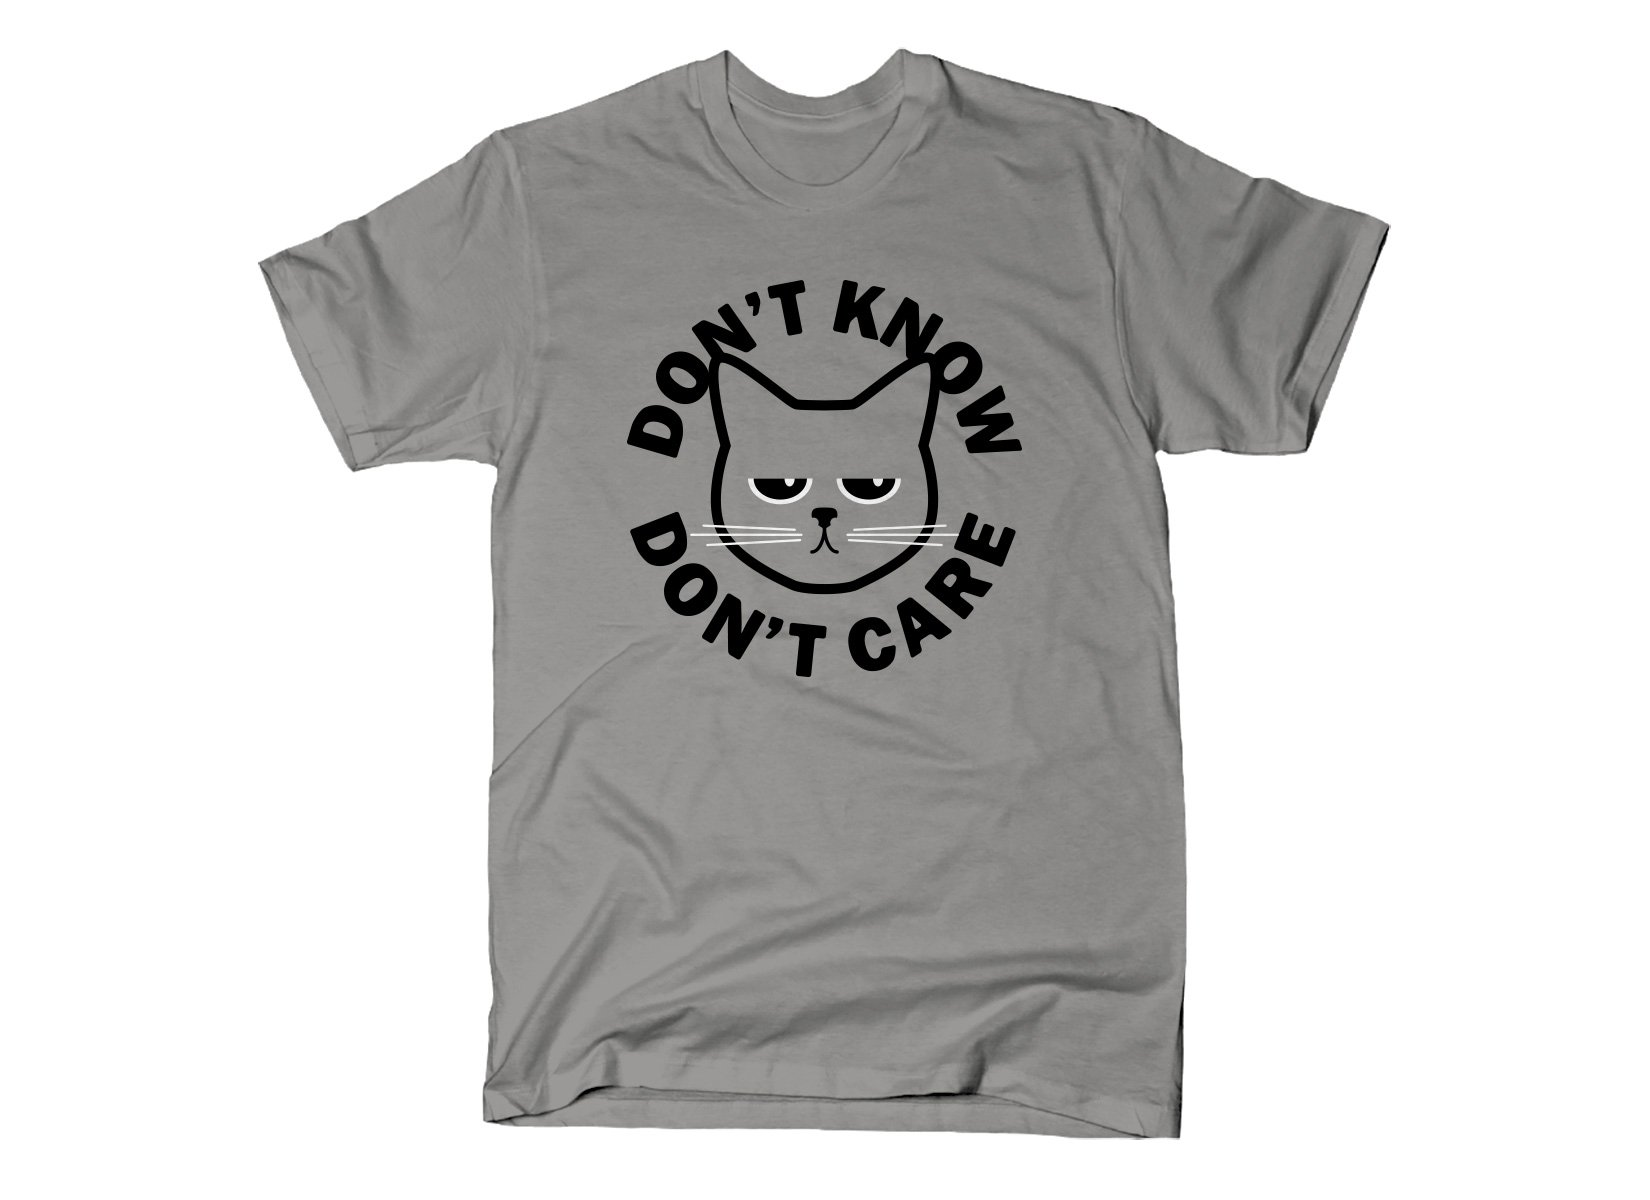 Don't Know Don't Care on Mens T-Shirt